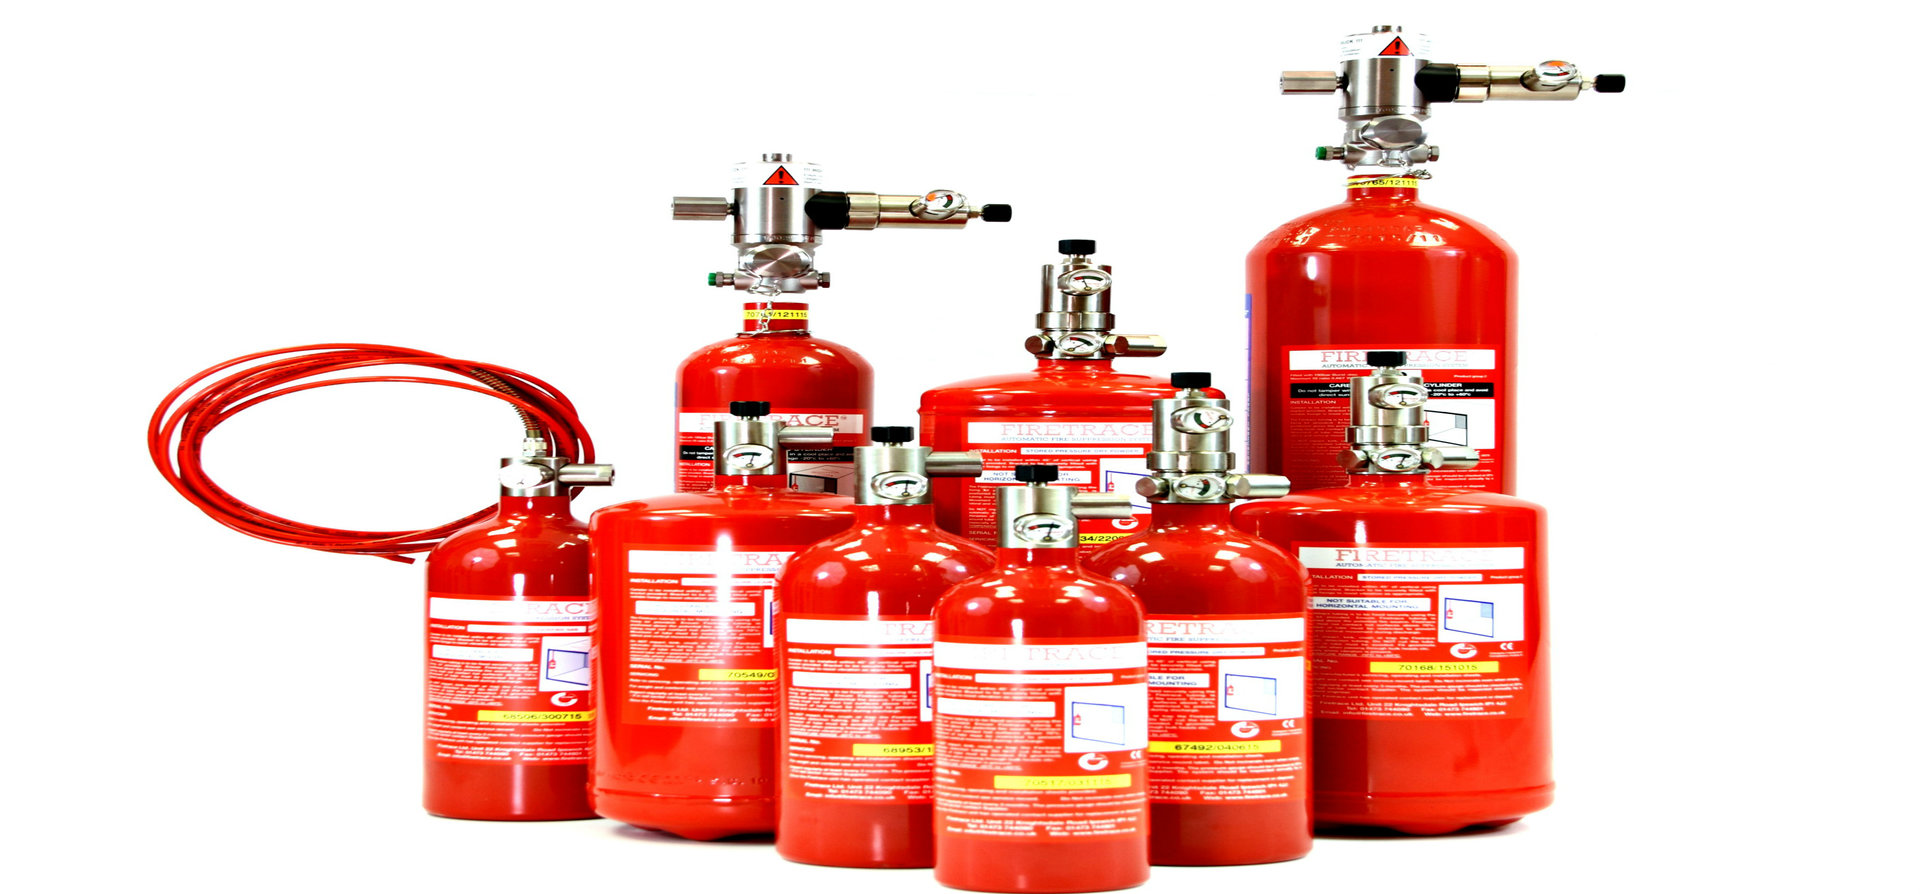 Reasons to Install an Automatic Fire Suppression System